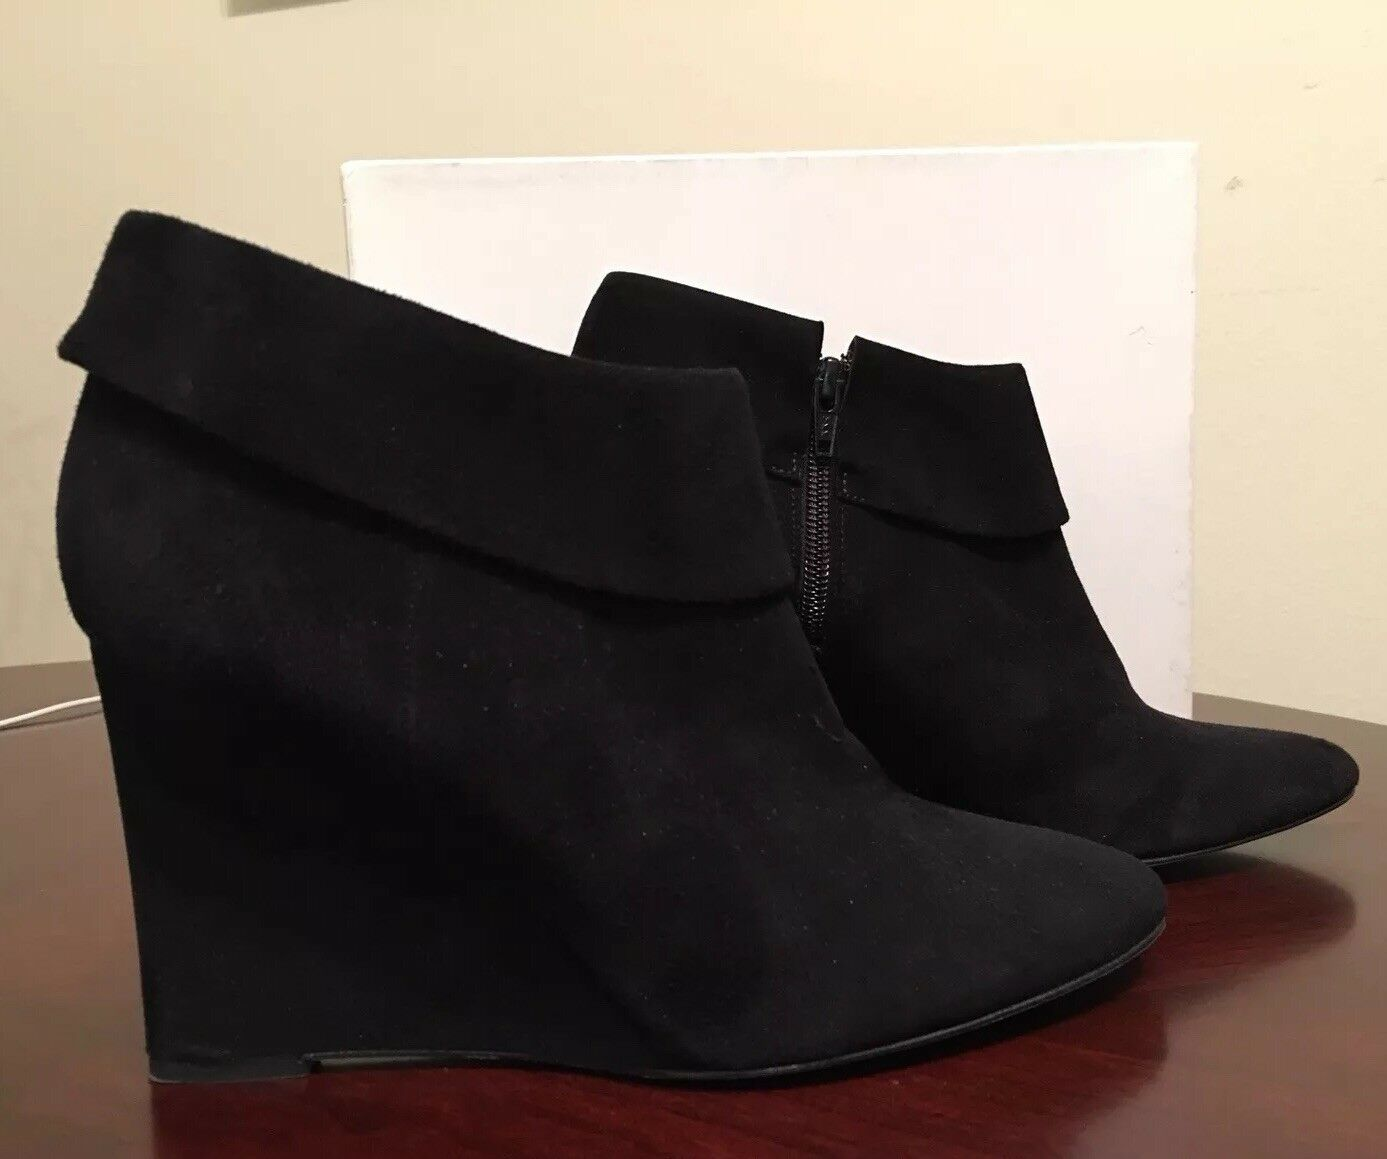 Saks fifth avenue ankle boots wedge suede schwarz 9 B   nice